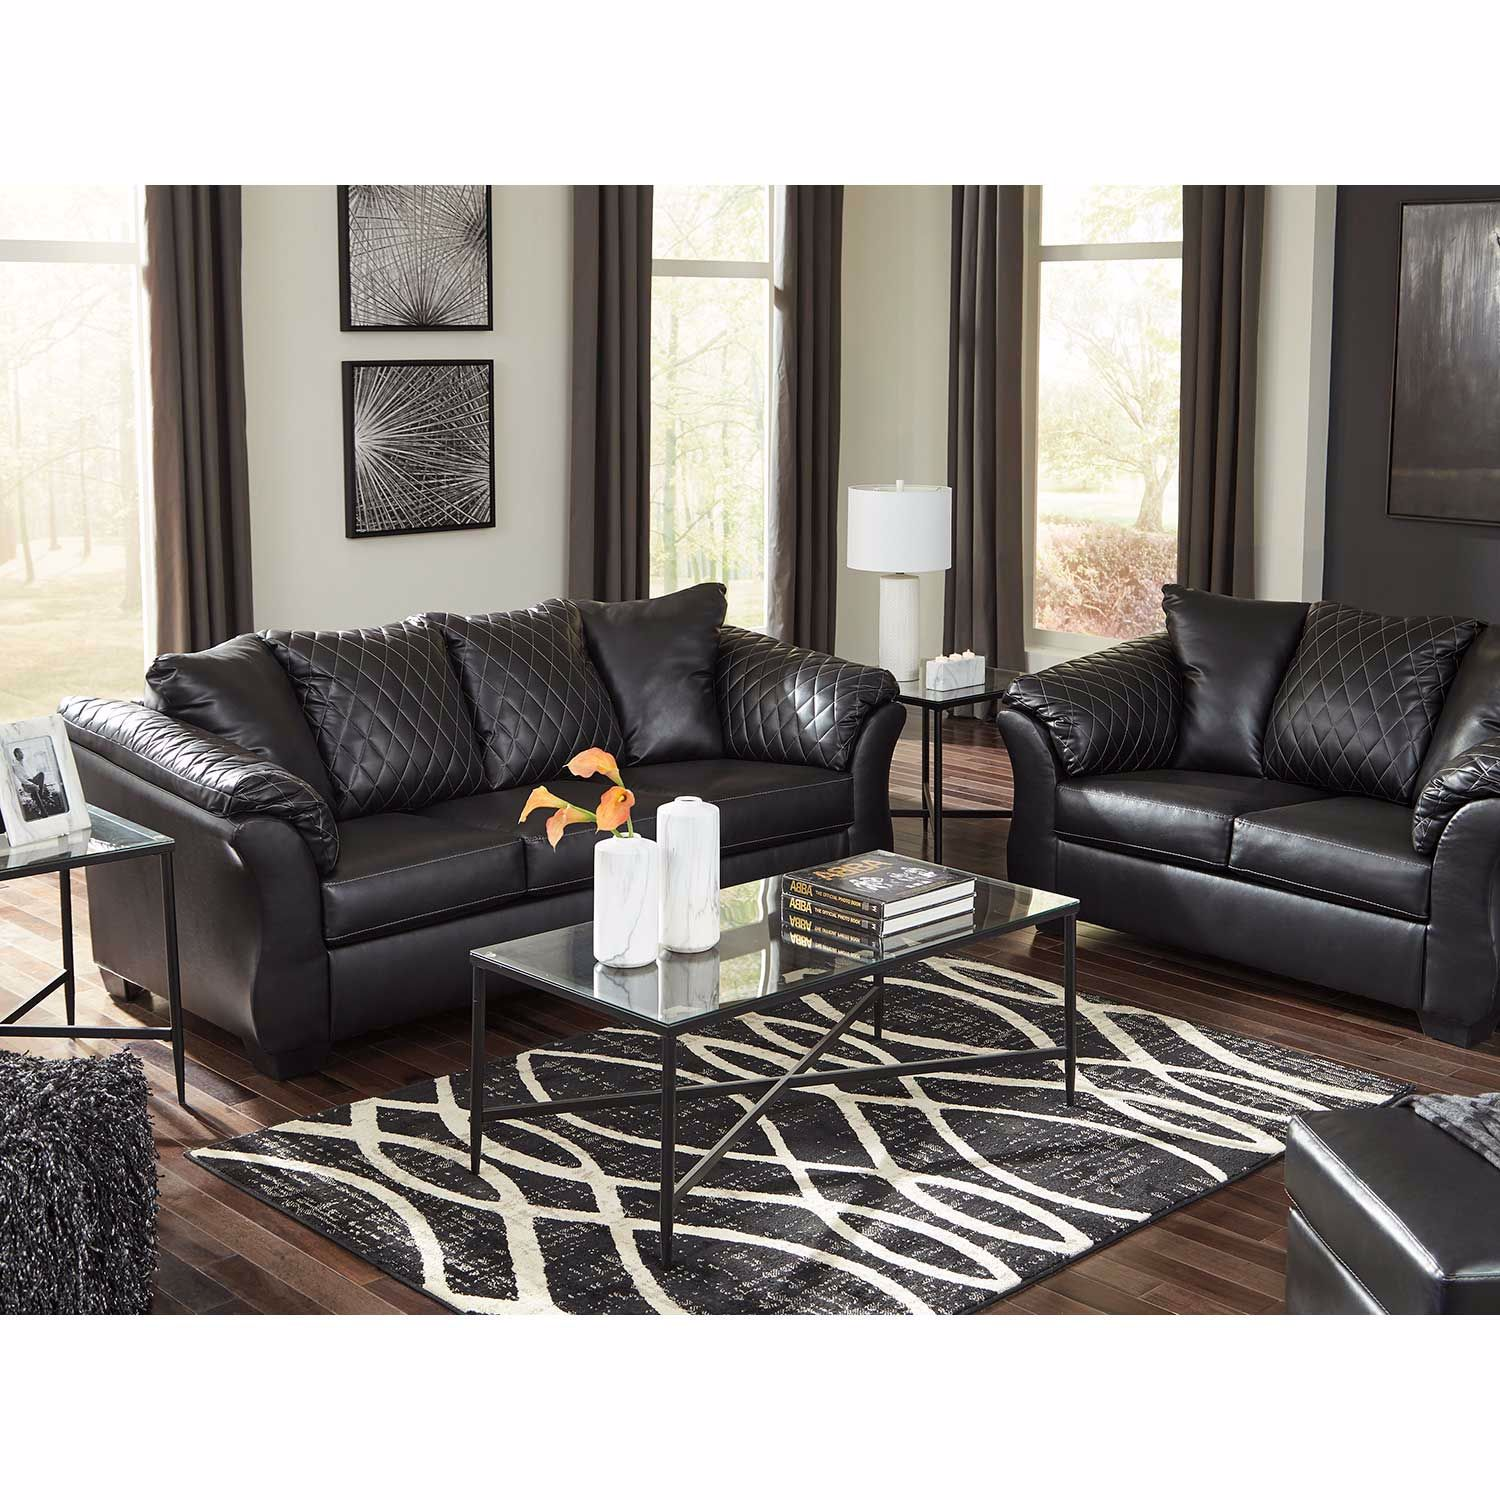 Picture of Betrillo Black Chair